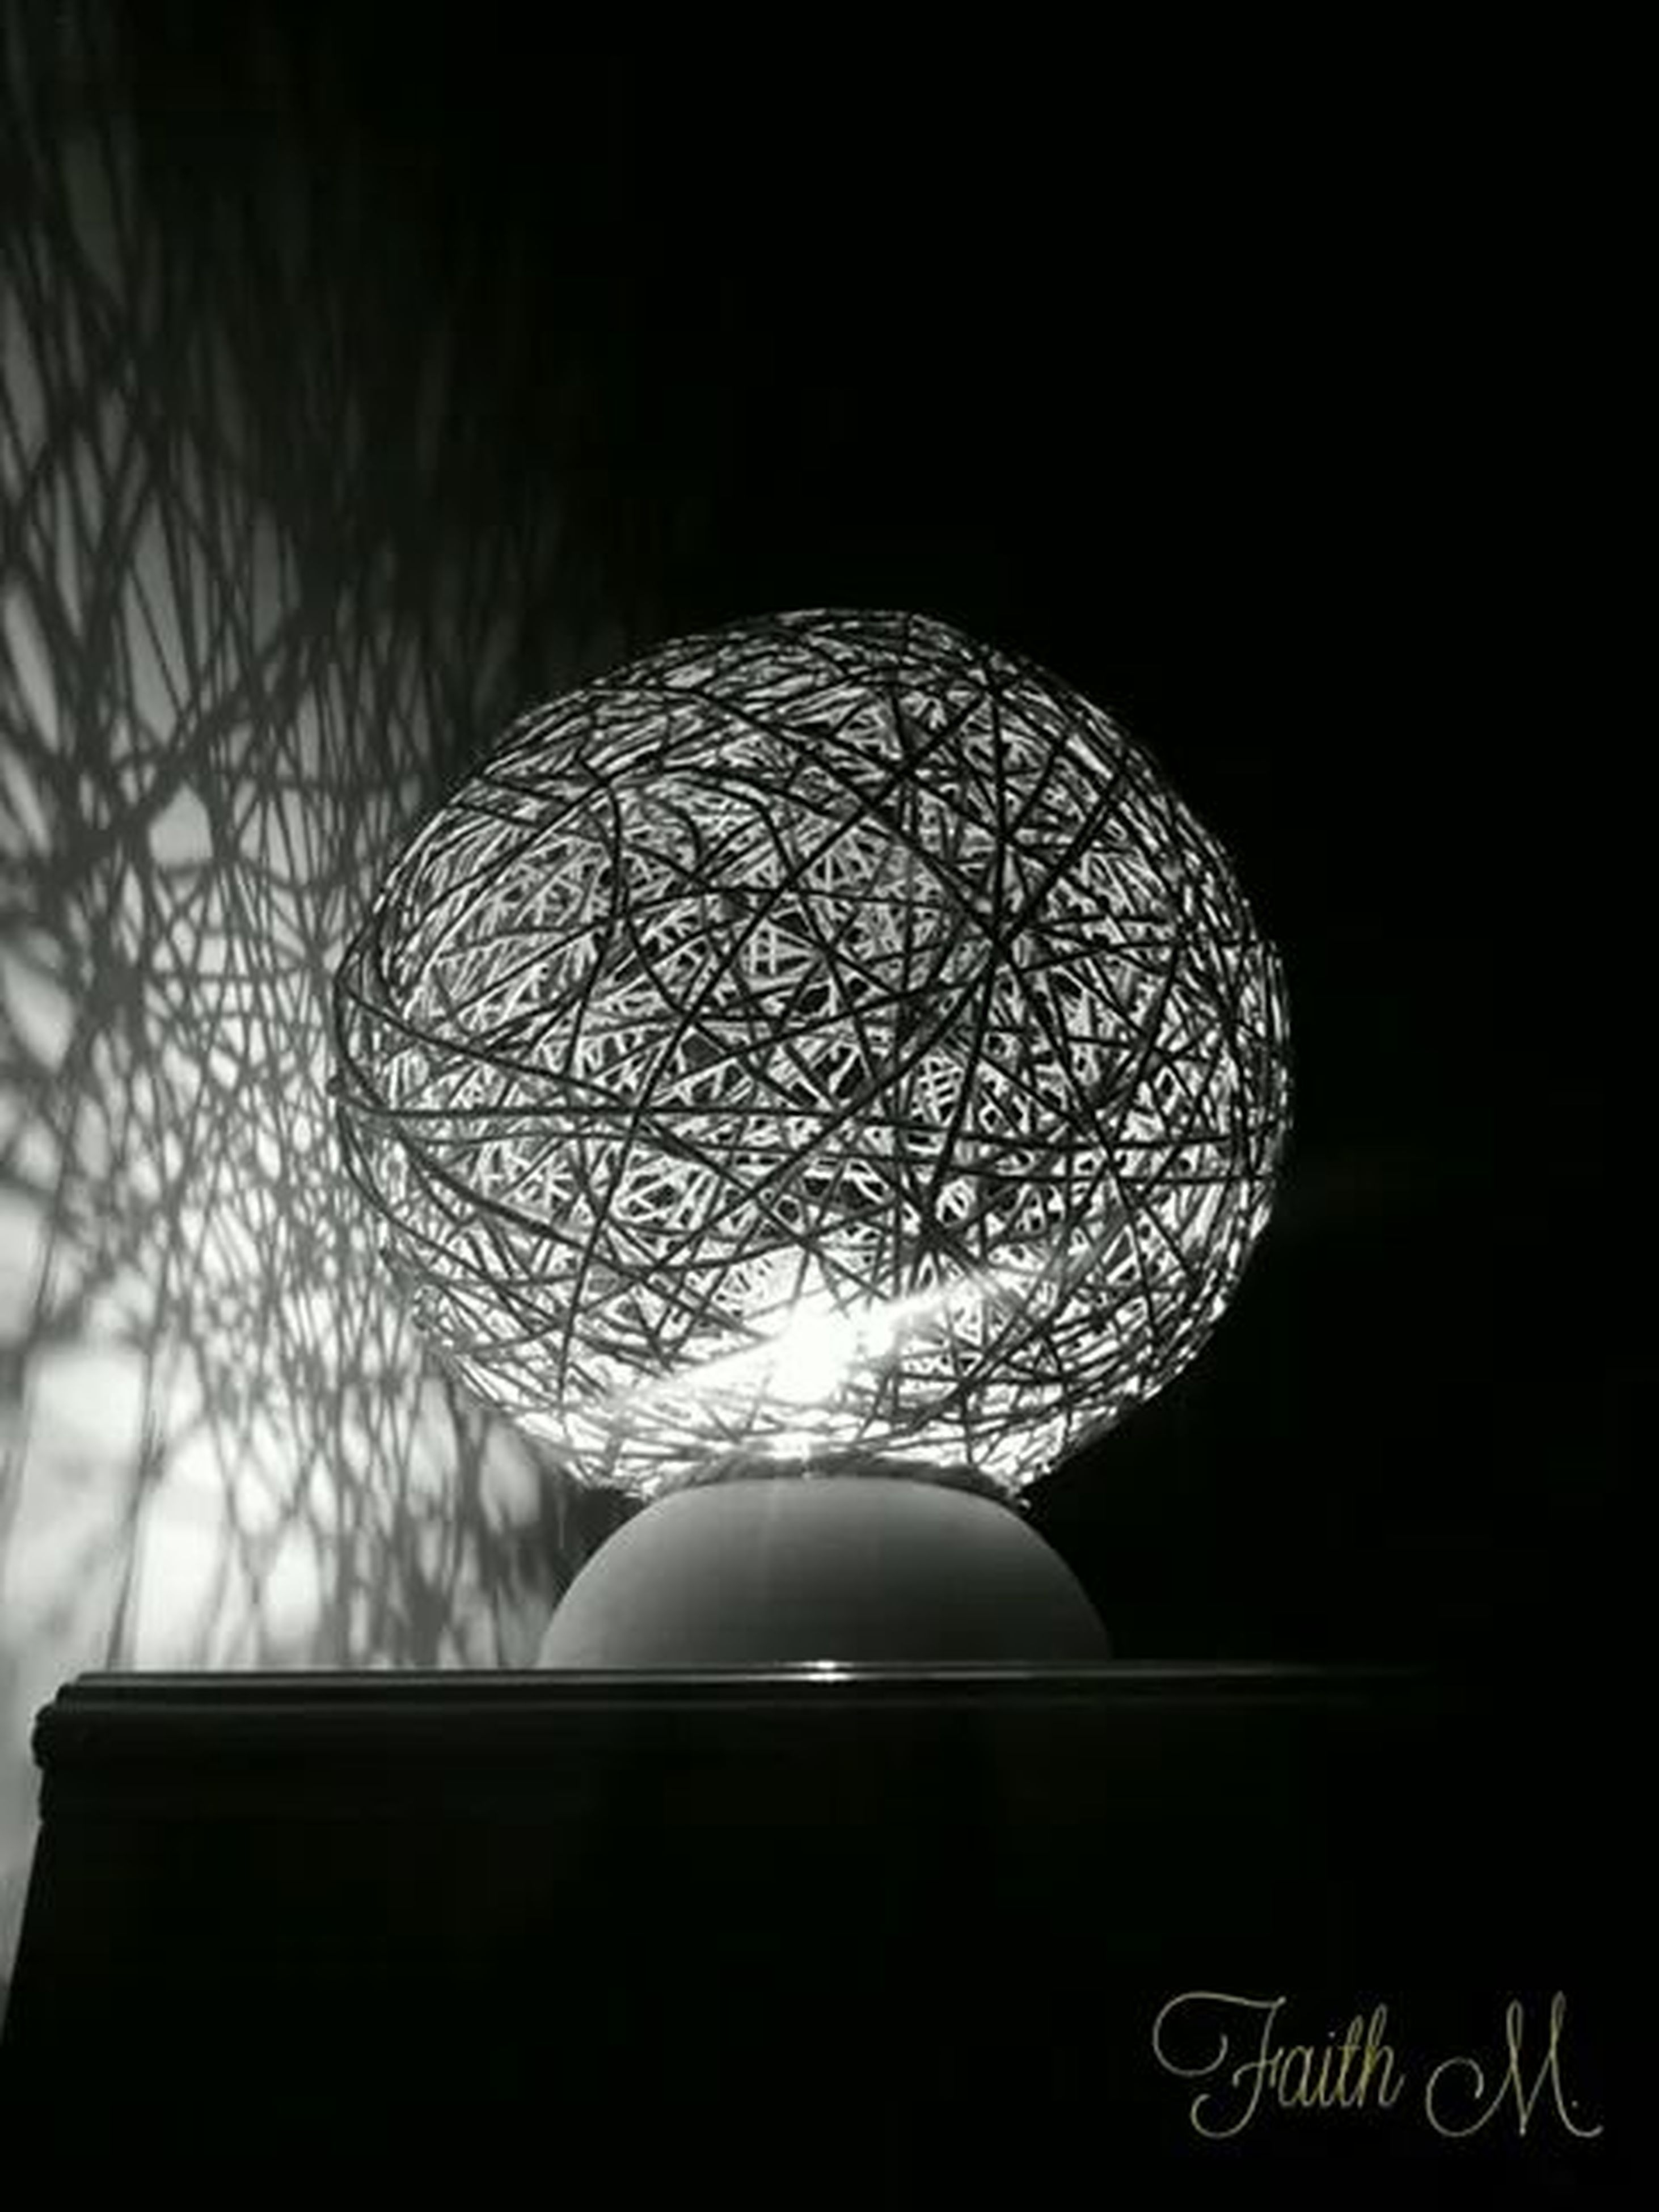 indoors, illuminated, low angle view, lighting equipment, circle, close-up, decoration, electric lamp, design, ceiling, pattern, electricity, night, hanging, geometric shape, sphere, glass - material, no people, dark, electric light